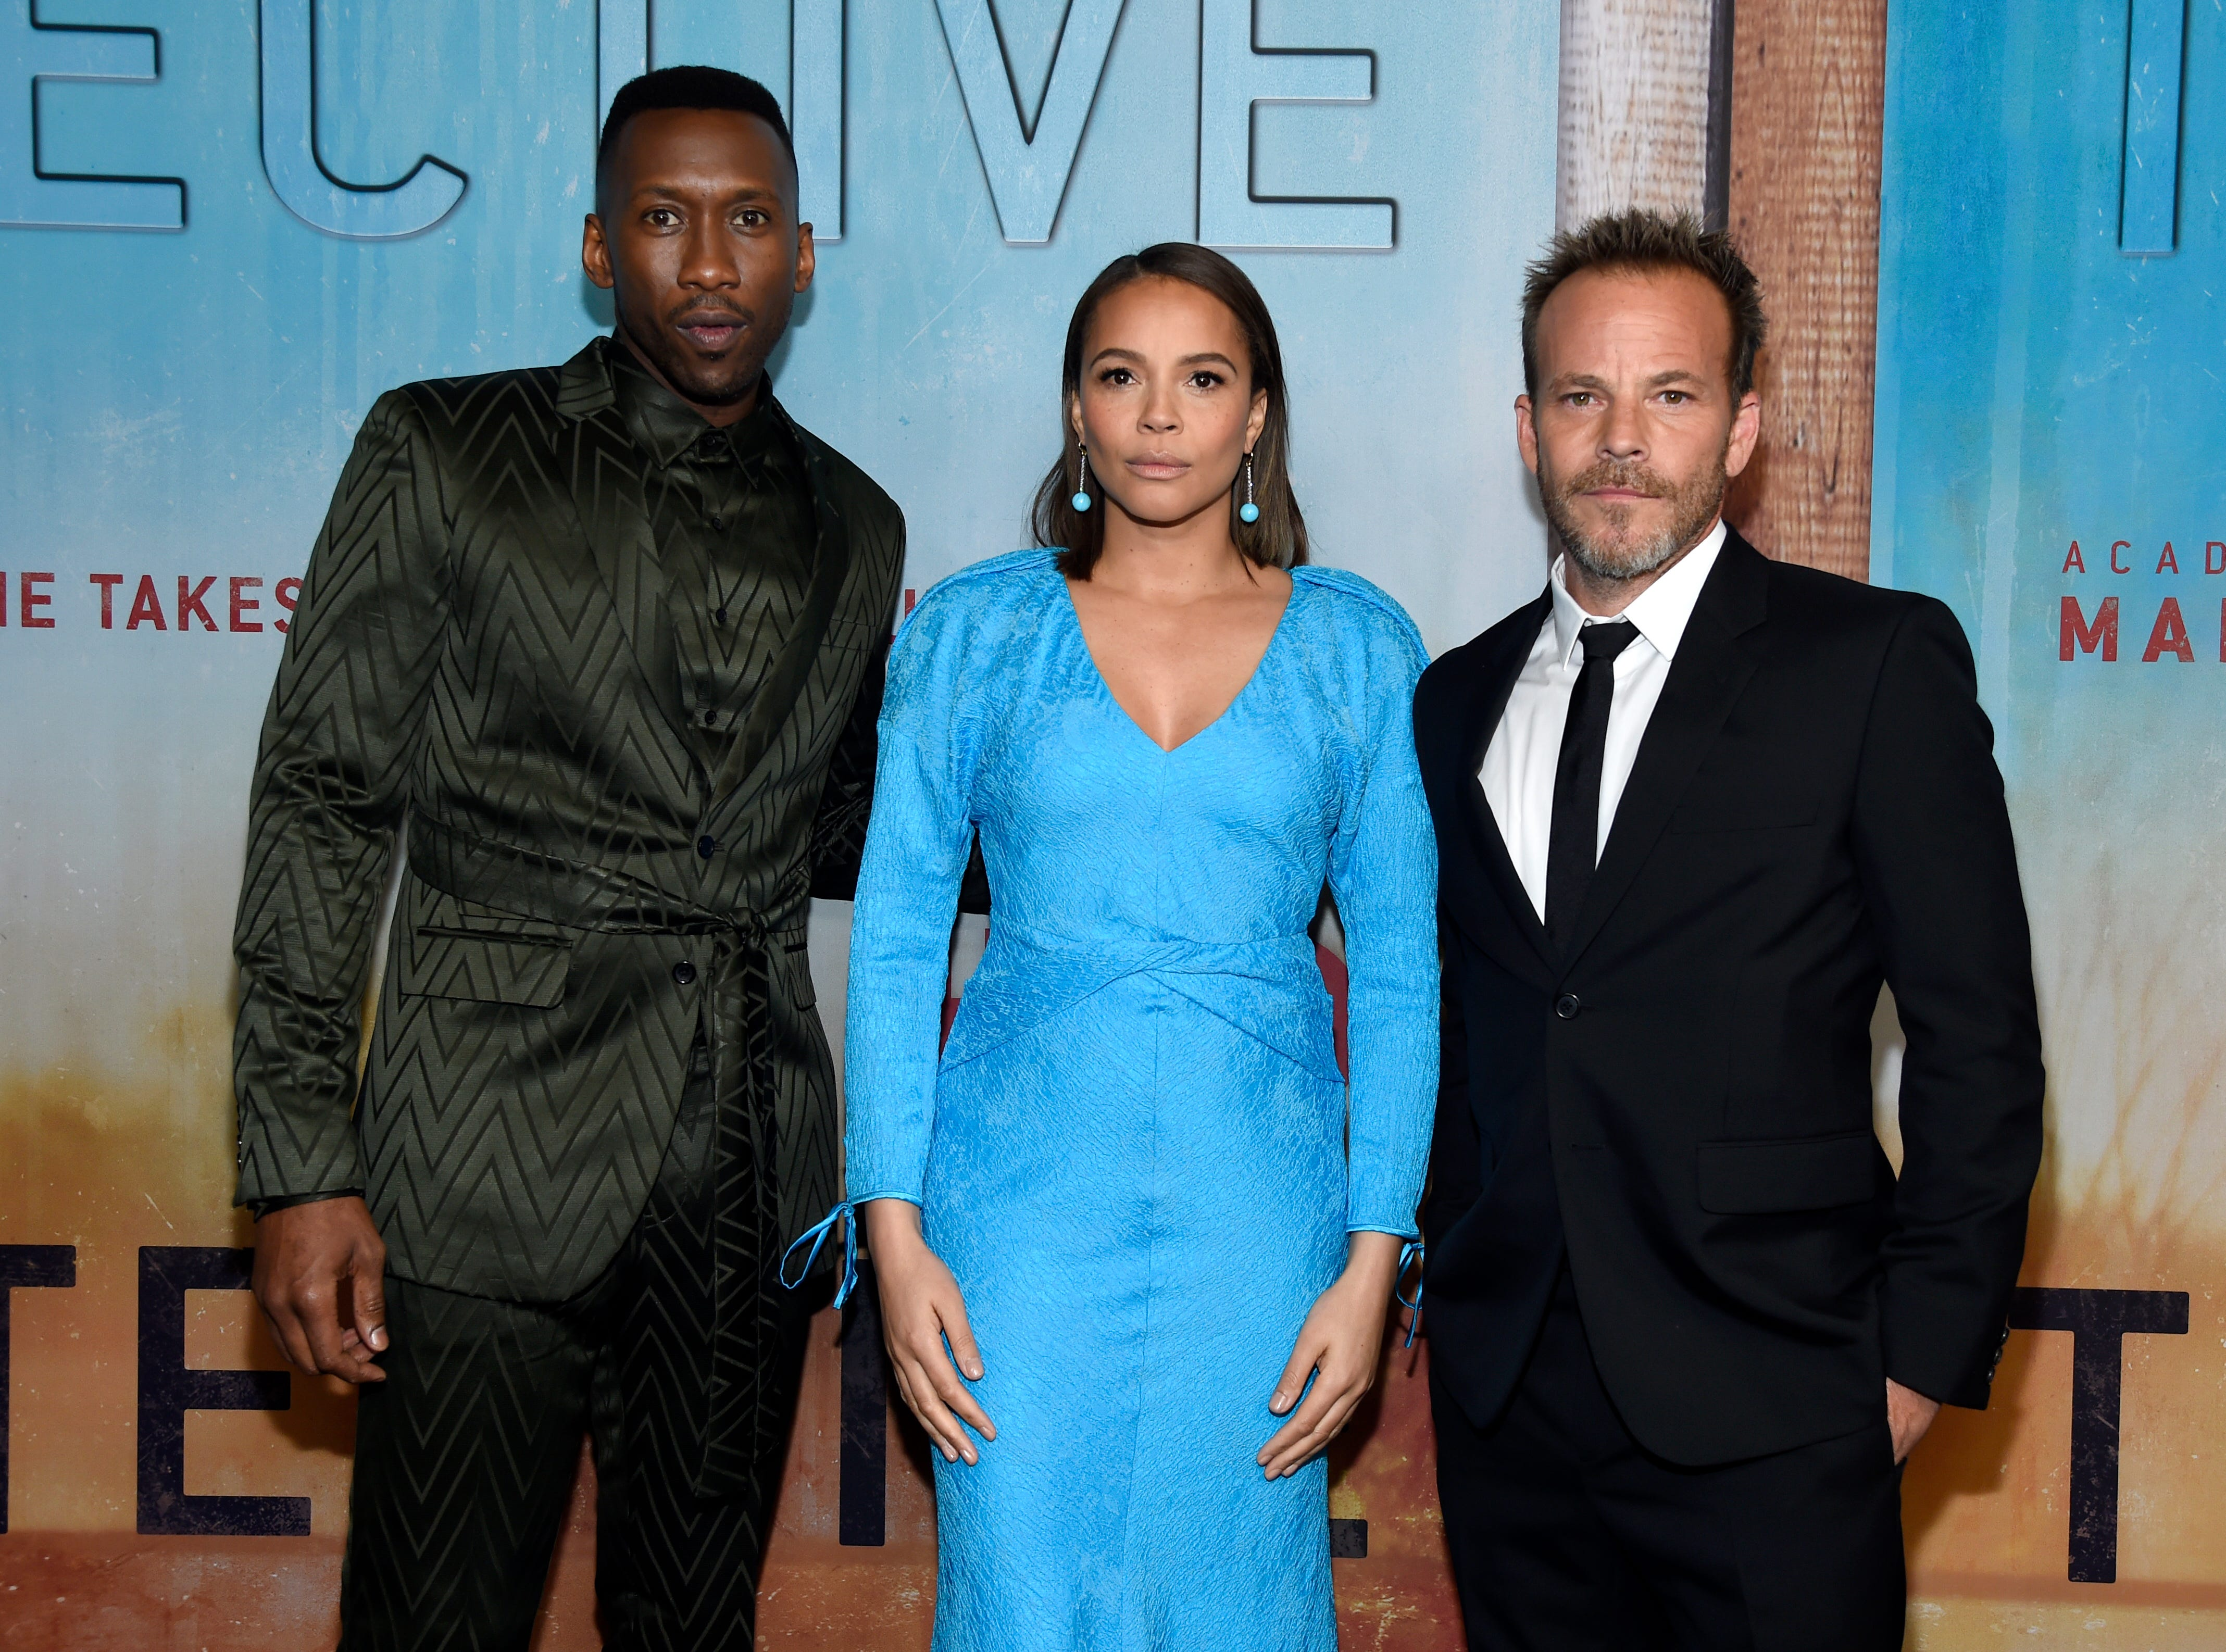 """Mahershala Ali, from left, Carmen Ejogo and Stephen Dorff arrive at the Los Angeles premiere of """"True Detective"""" season 3 at the Directors Guild of America on Thursday, Jan. 10, 2019."""